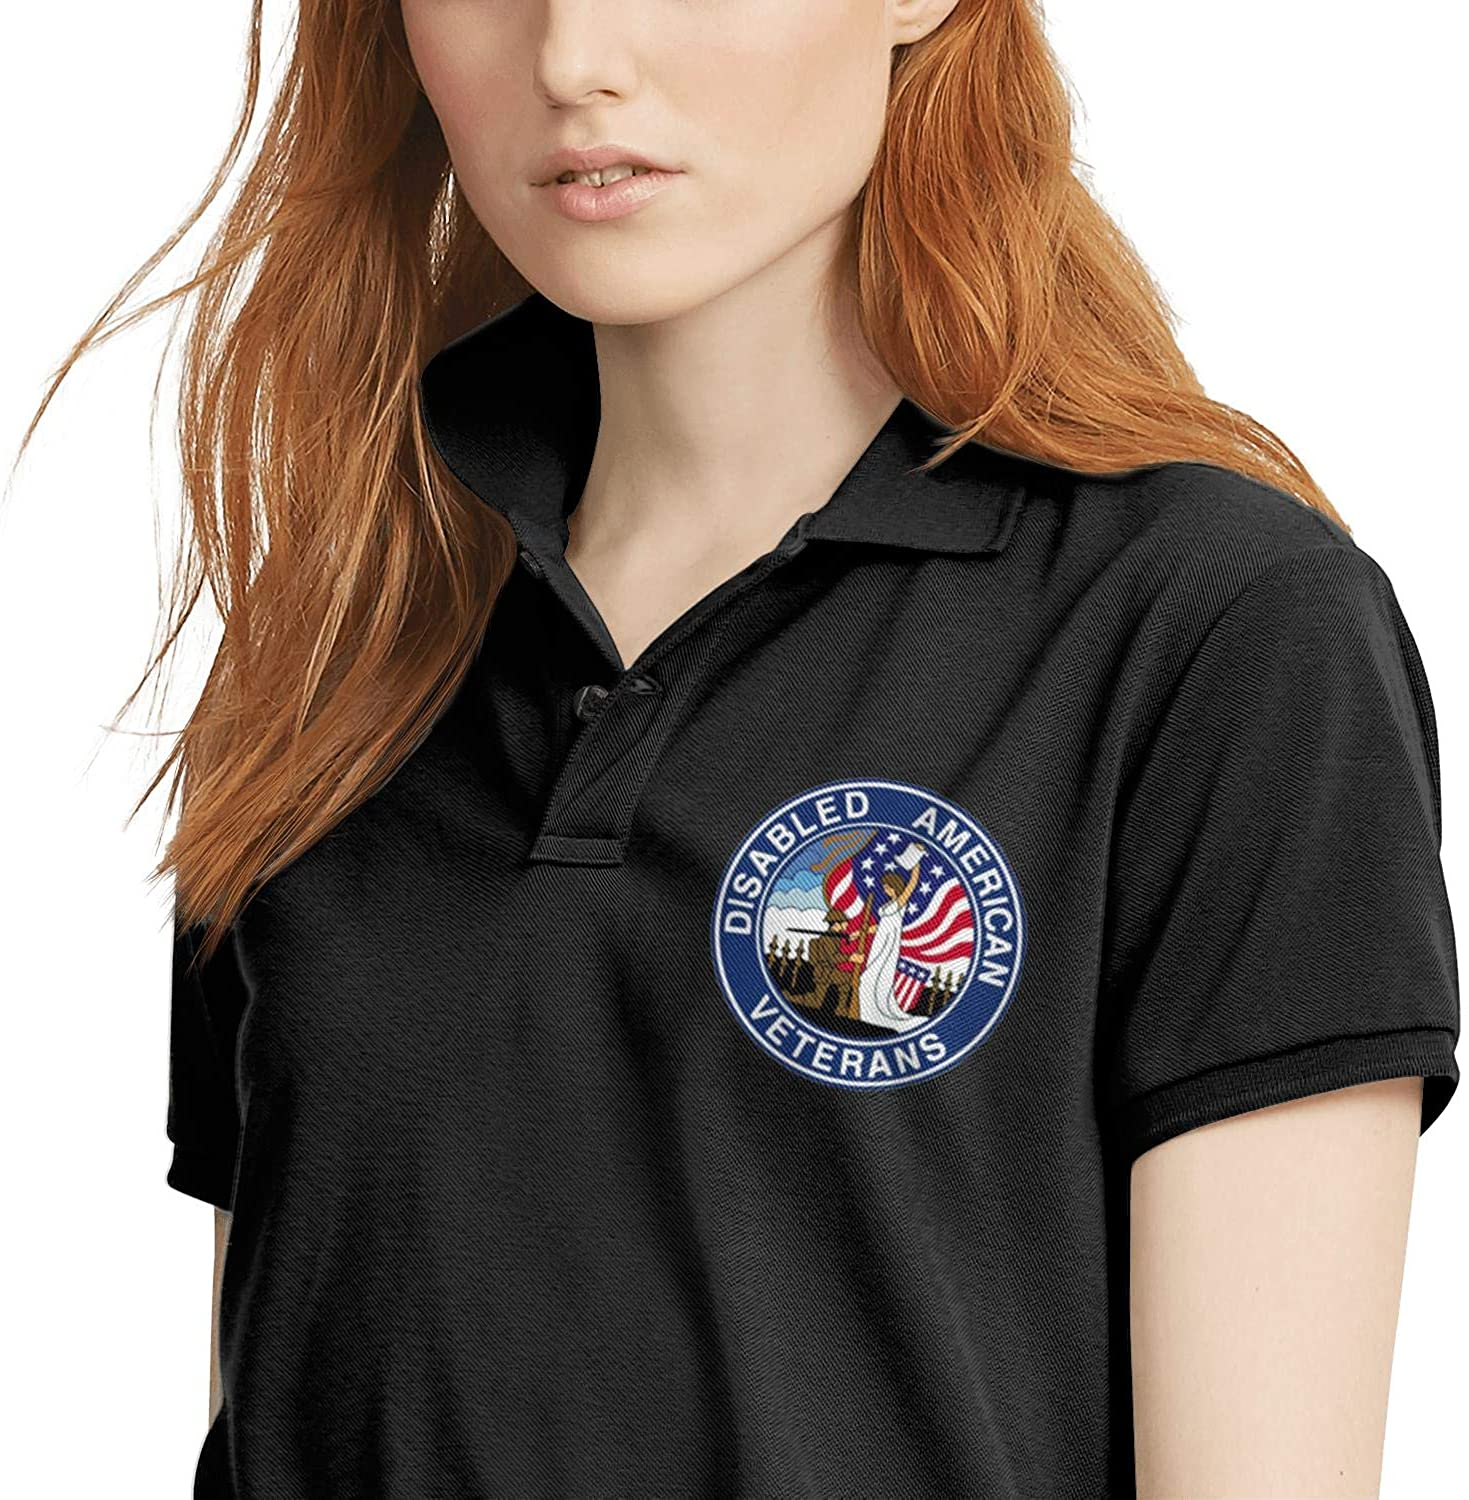 Department of Defense Womens t-Shirt Polo Shirt Cotton Cool t Shirt Outdoor Summer Soft and Comfortable Short Sleeve Tops